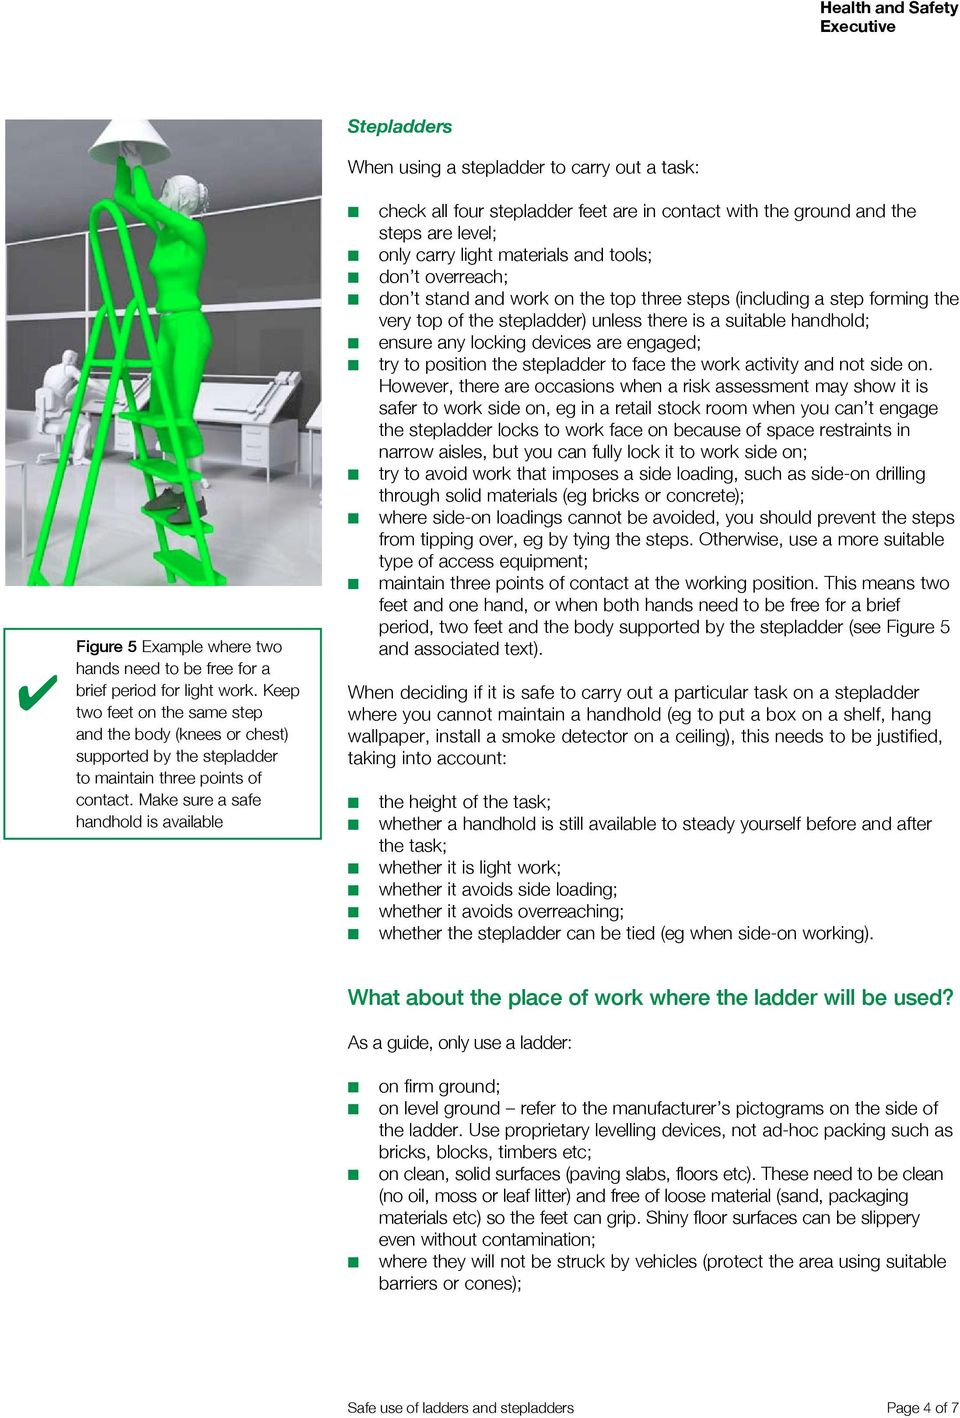 Make sure a safe handhold is available Stepladders When using a stepladder to carry out a task: check all four stepladder feet are in contact with the ground and the steps are level; only carry light